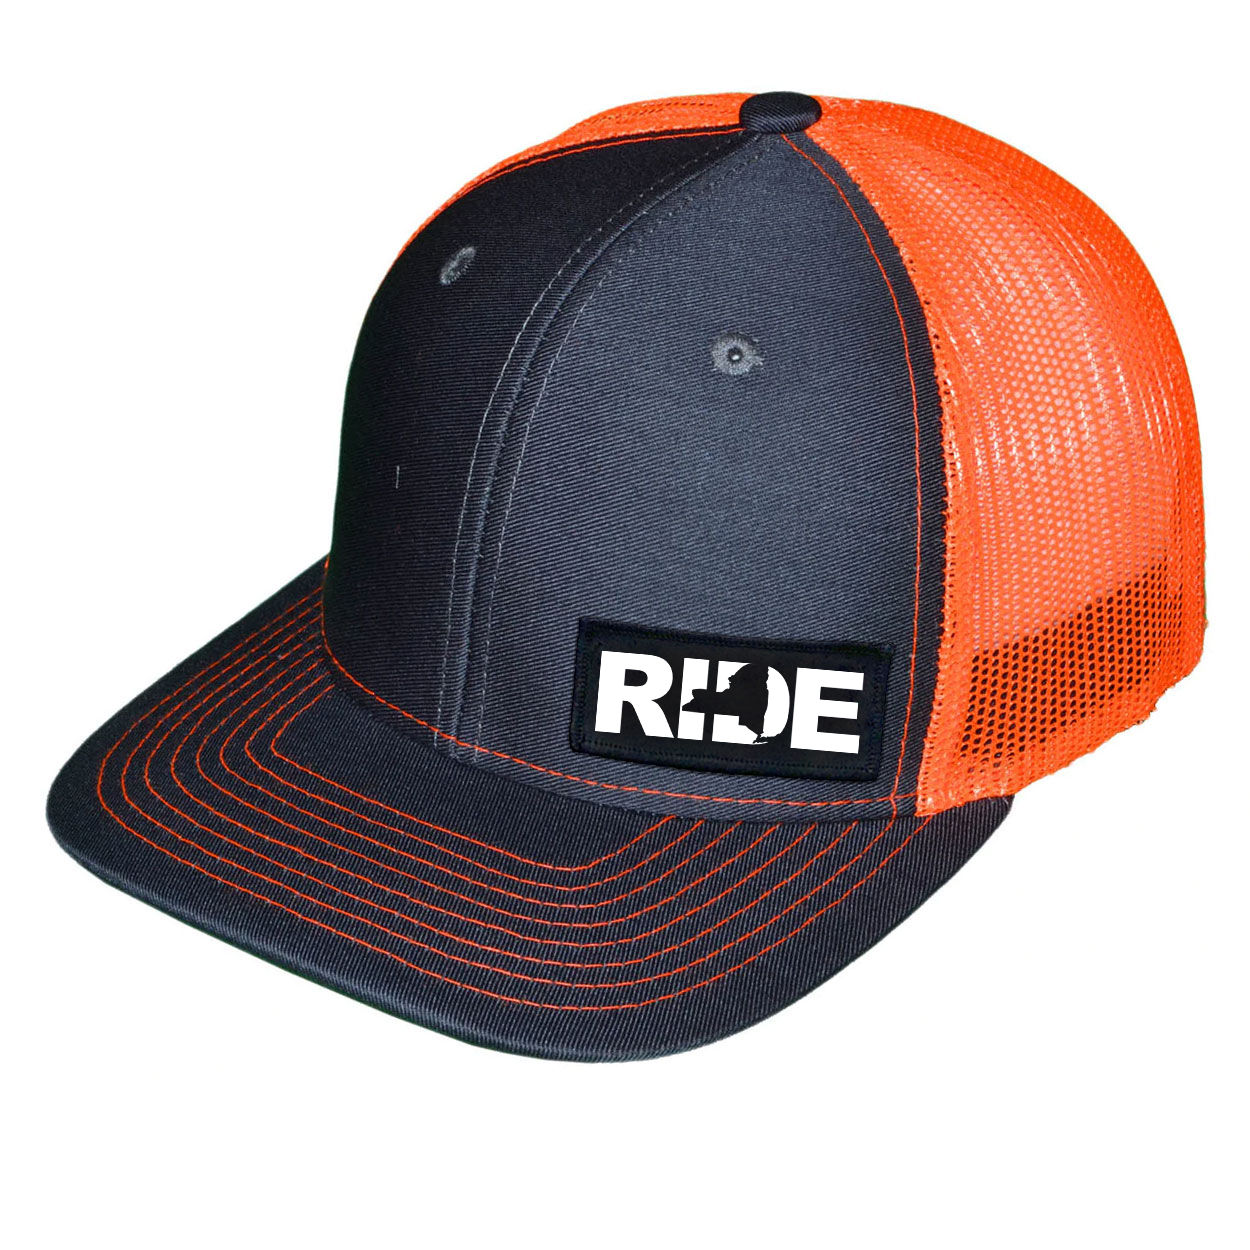 Ride New York Night Out Woven Patch Snapback Trucker Hat Dark Gray/Orange (White Logo)